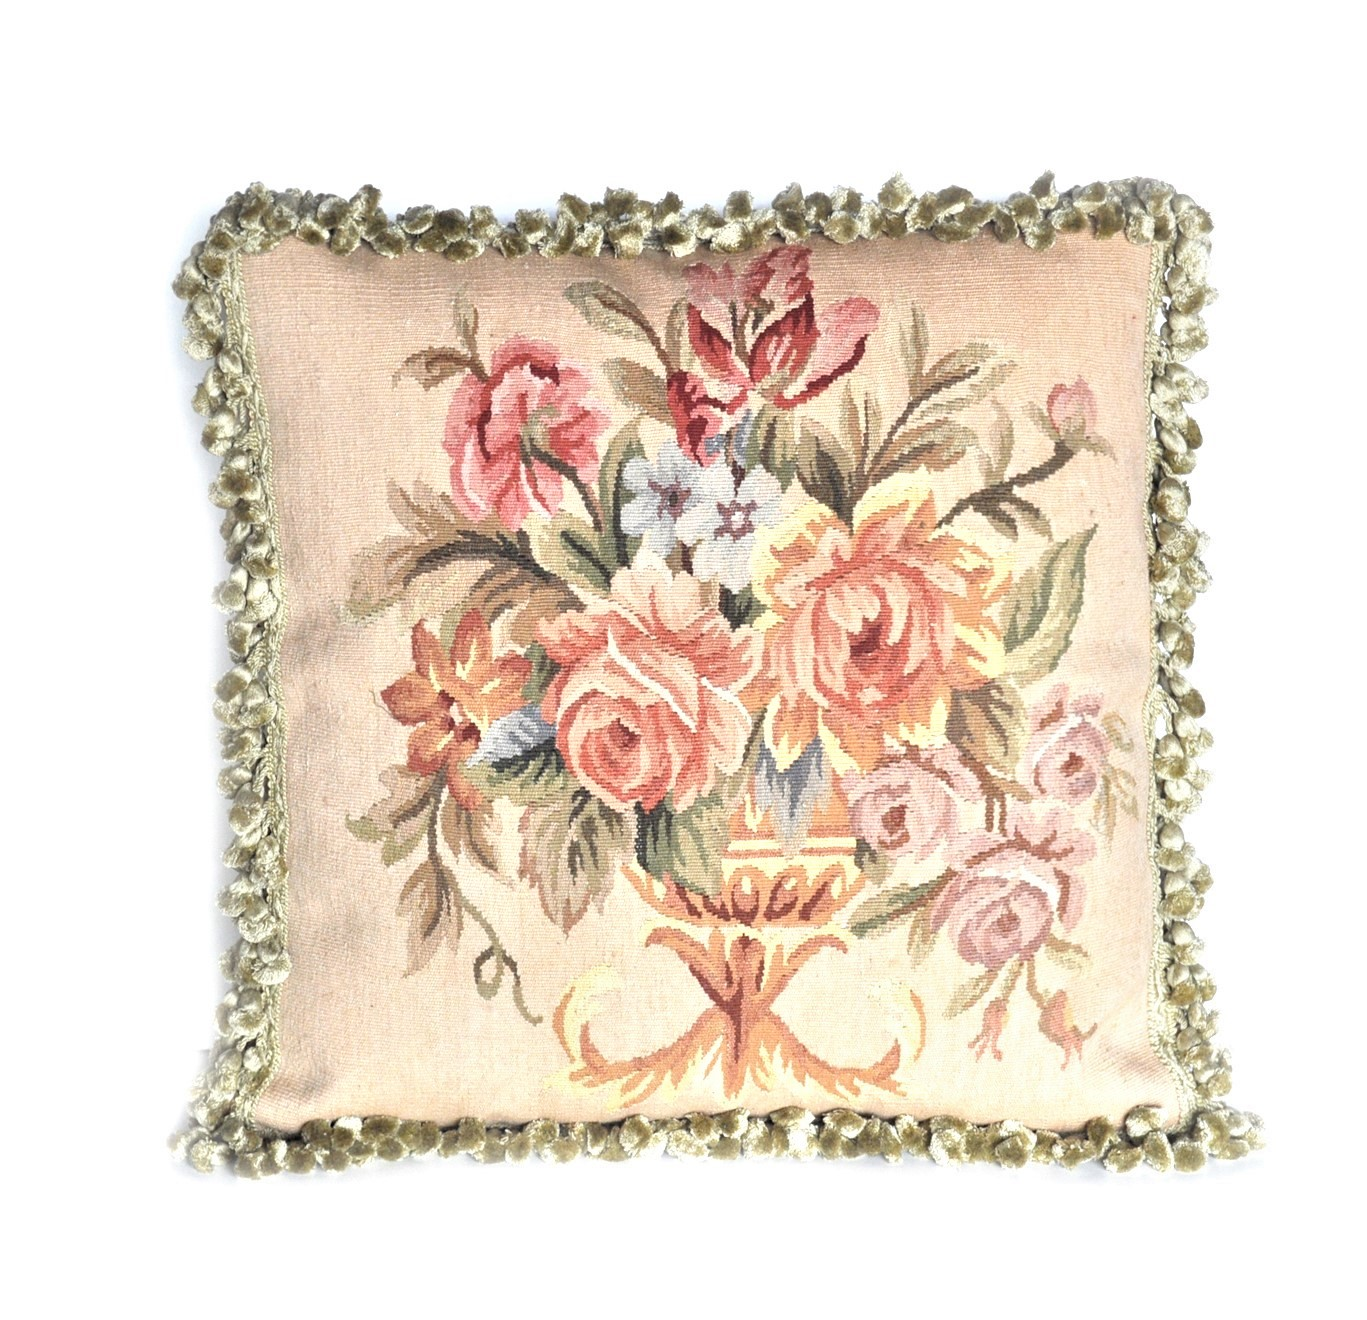 20″ x 20″ Handmade Antique Reproduction Gobelin Tapestry Wool and Silk Aubusson Cushion Cover Pillow Case 12980015